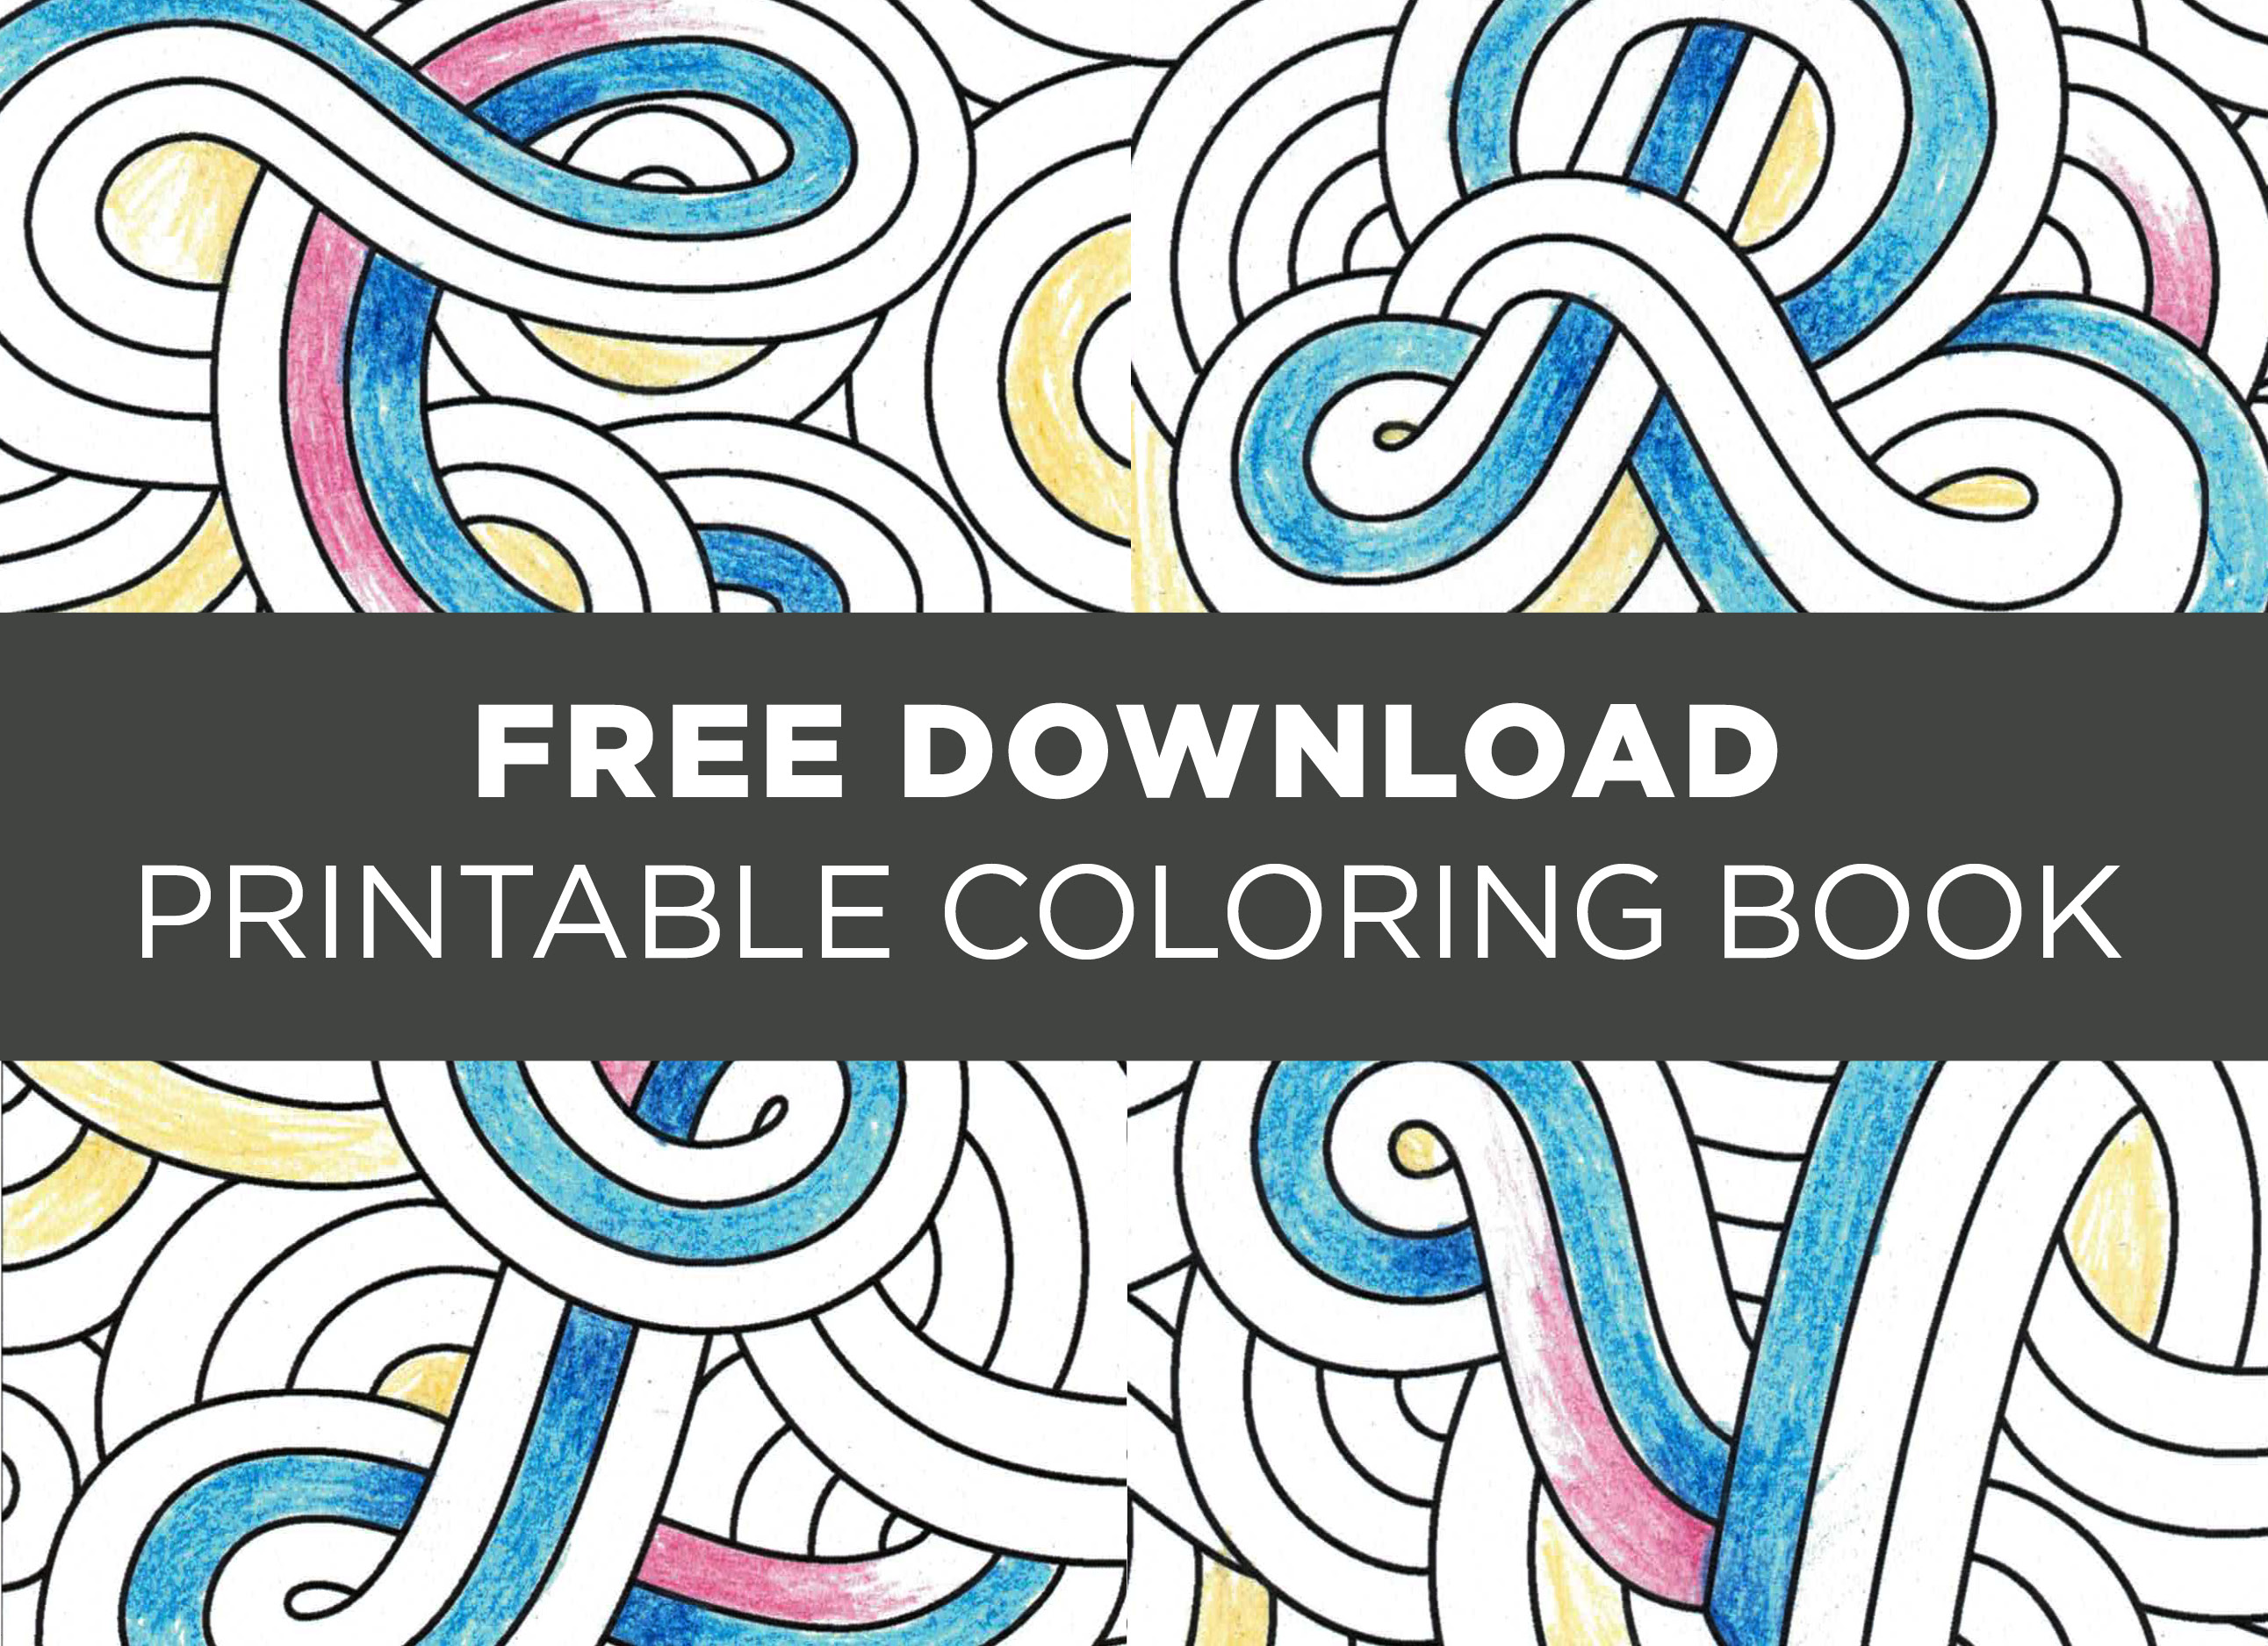 CreativeLive Printable Coloring Book Download